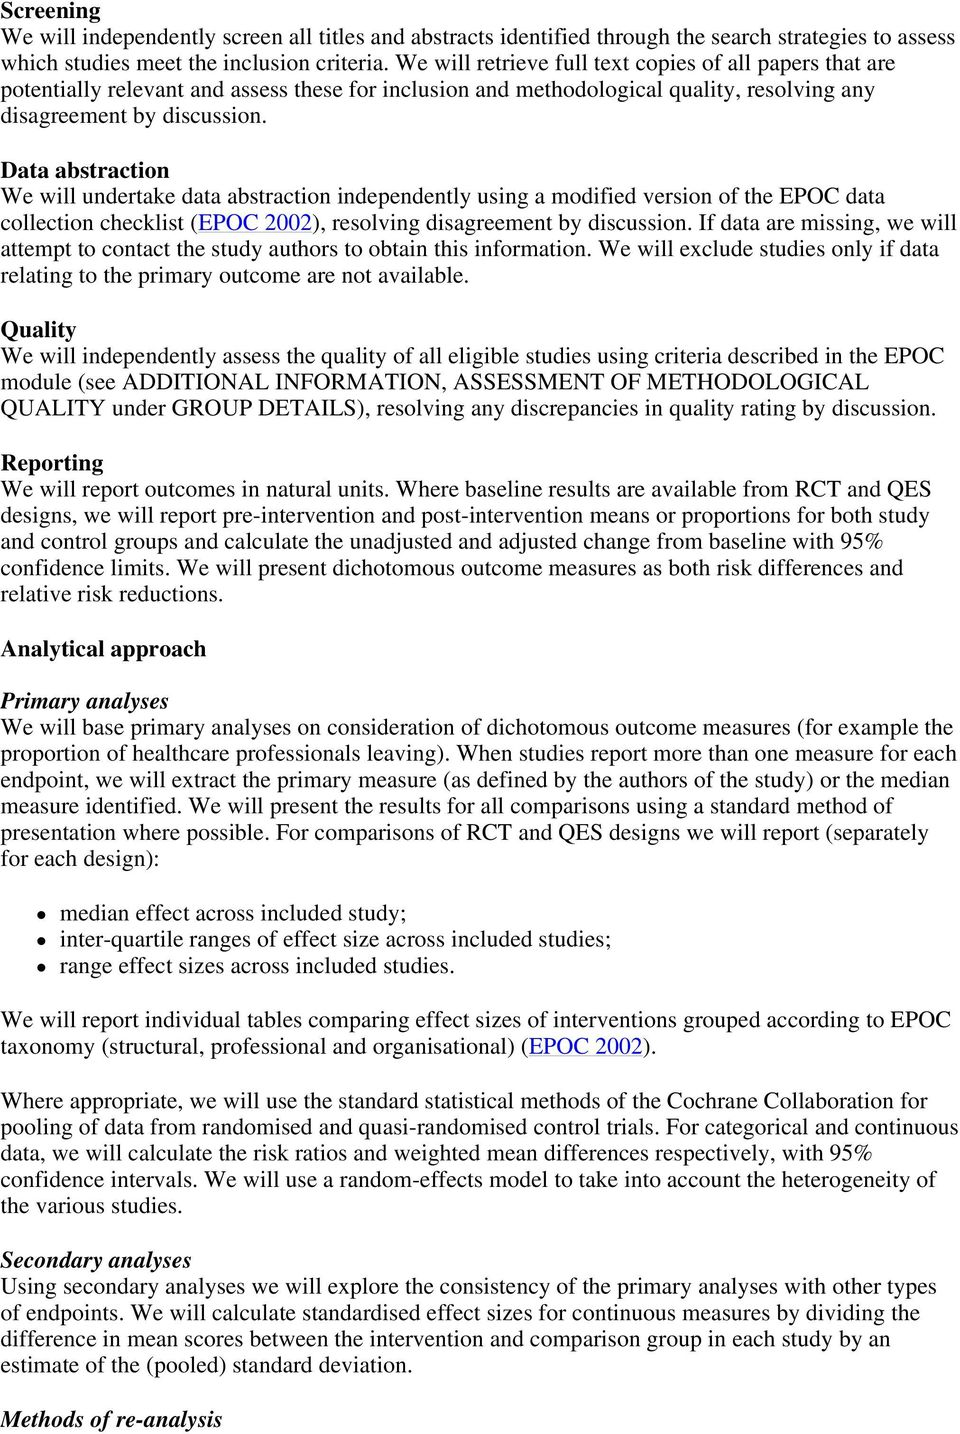 Data abstraction We will undertake data abstraction independently using a modified version of the EPOC data collection checklist (EPOC 2002), resolving disagreement by discussion.